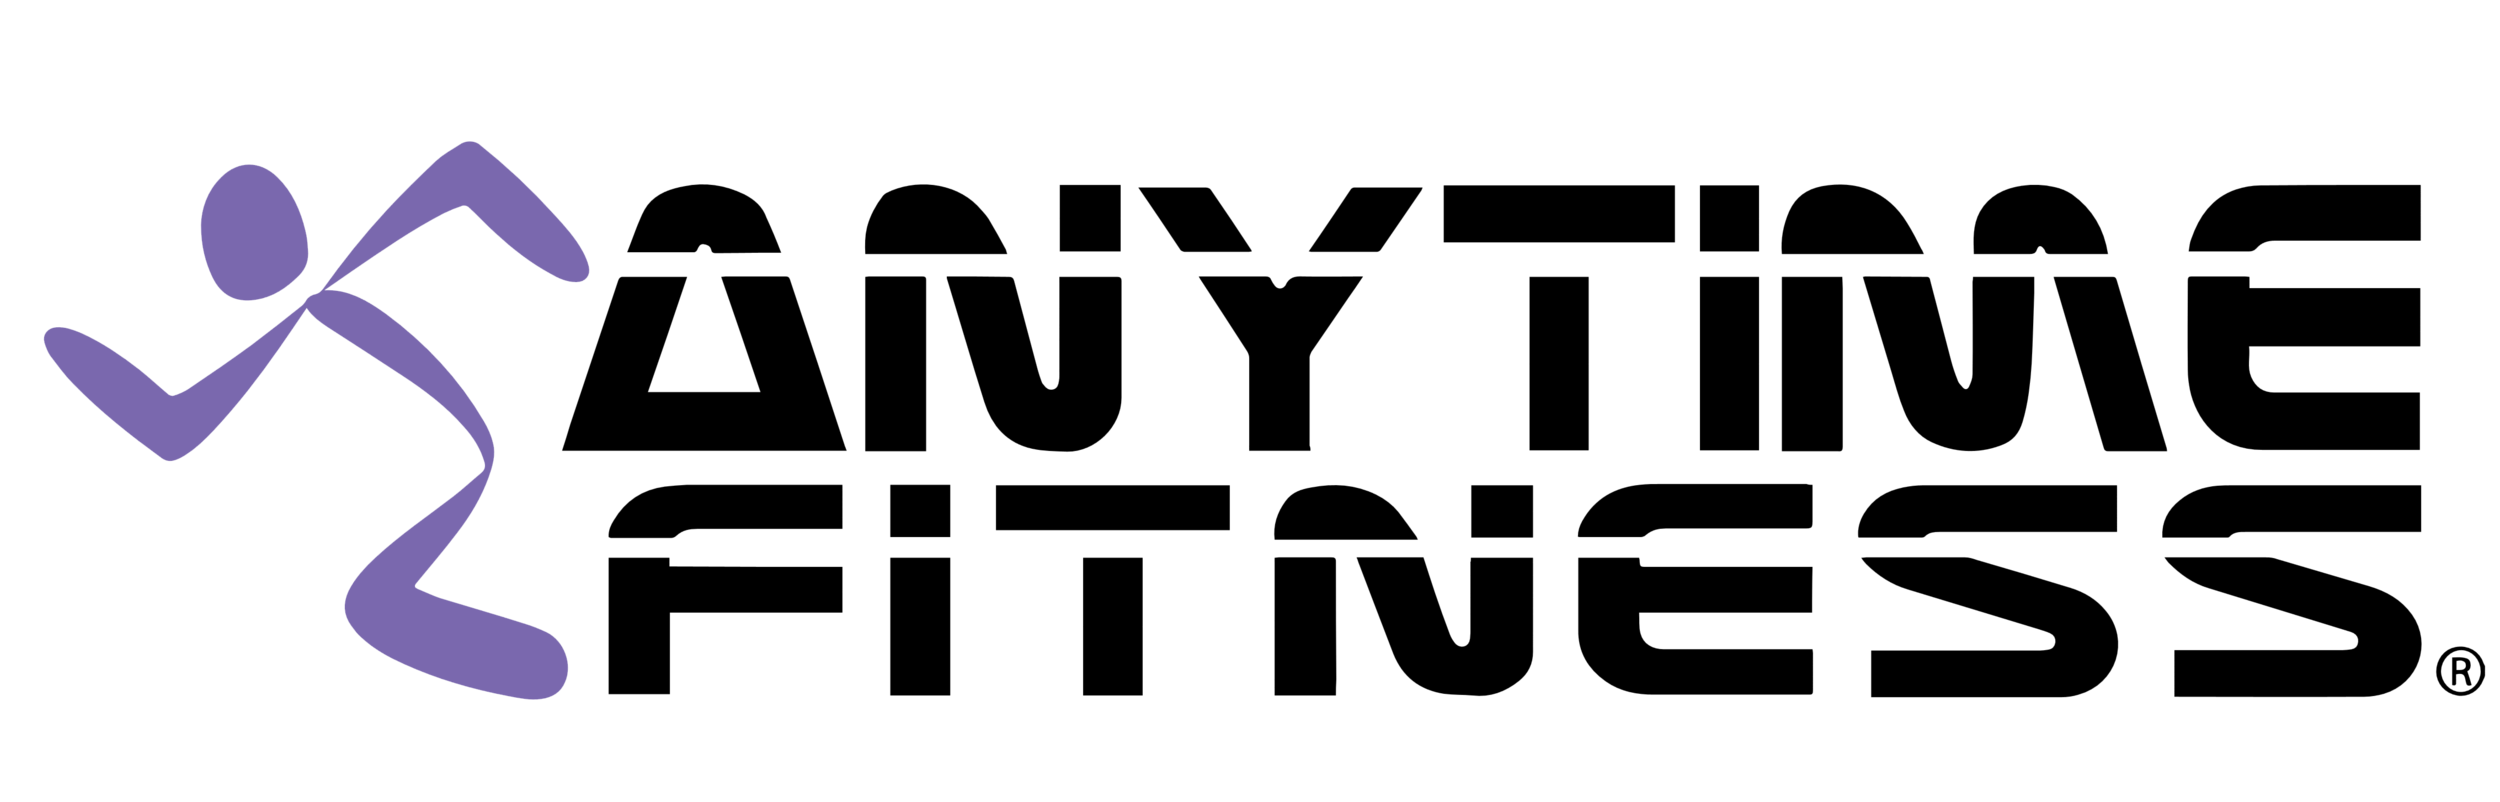 Anytime_Fitness_logo (1).png